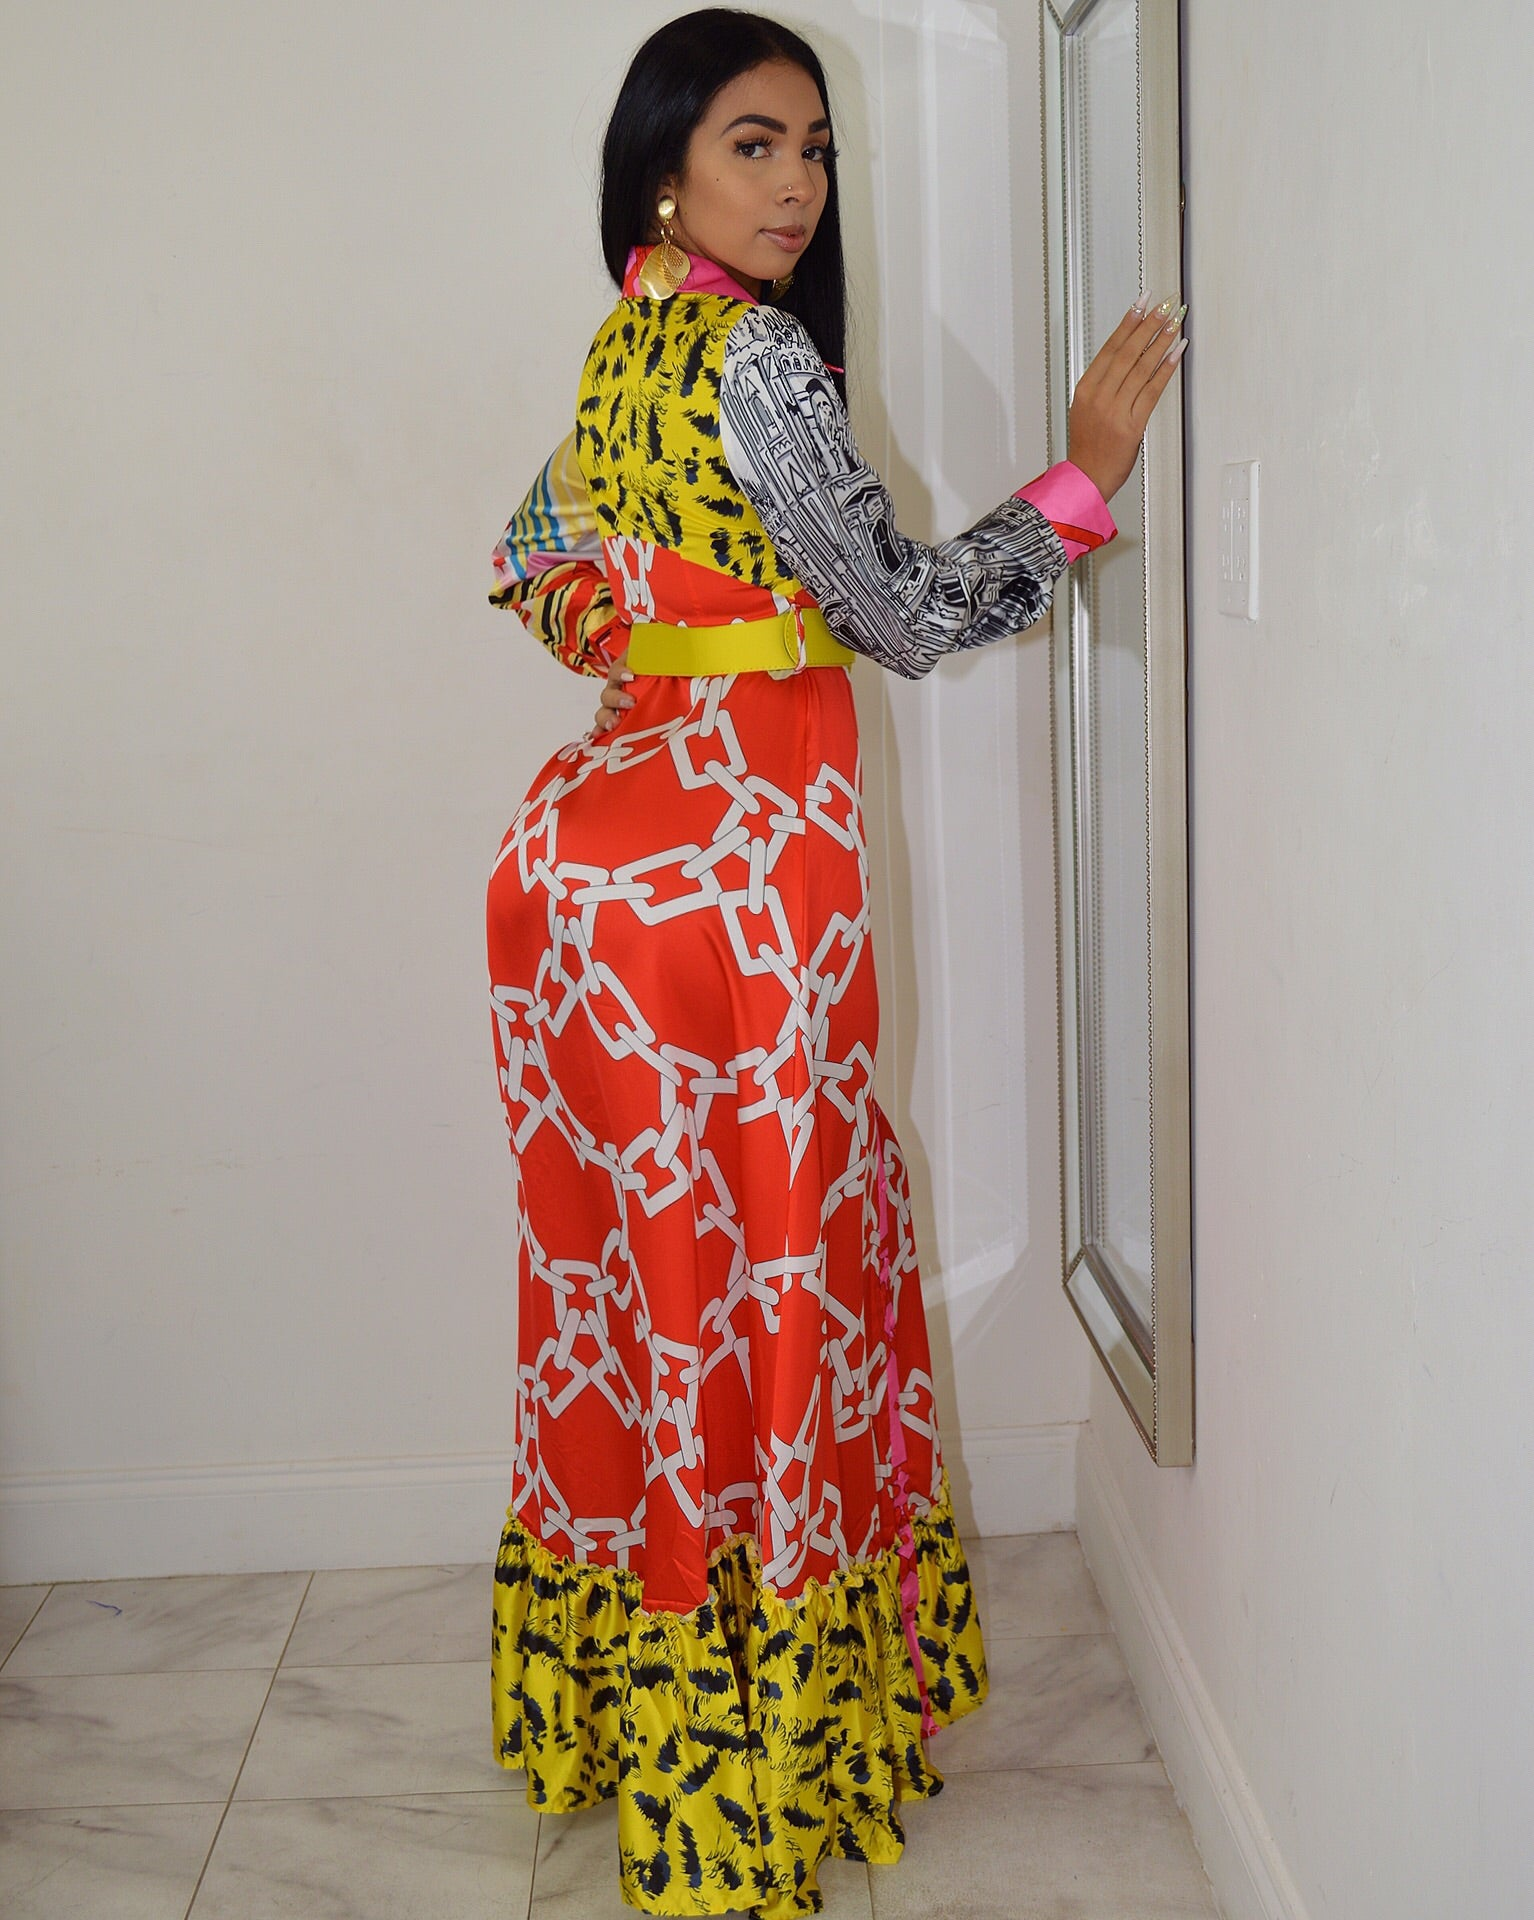 Chic in Print Long Sleeve  Maxi Dress - La Epoca Fashion